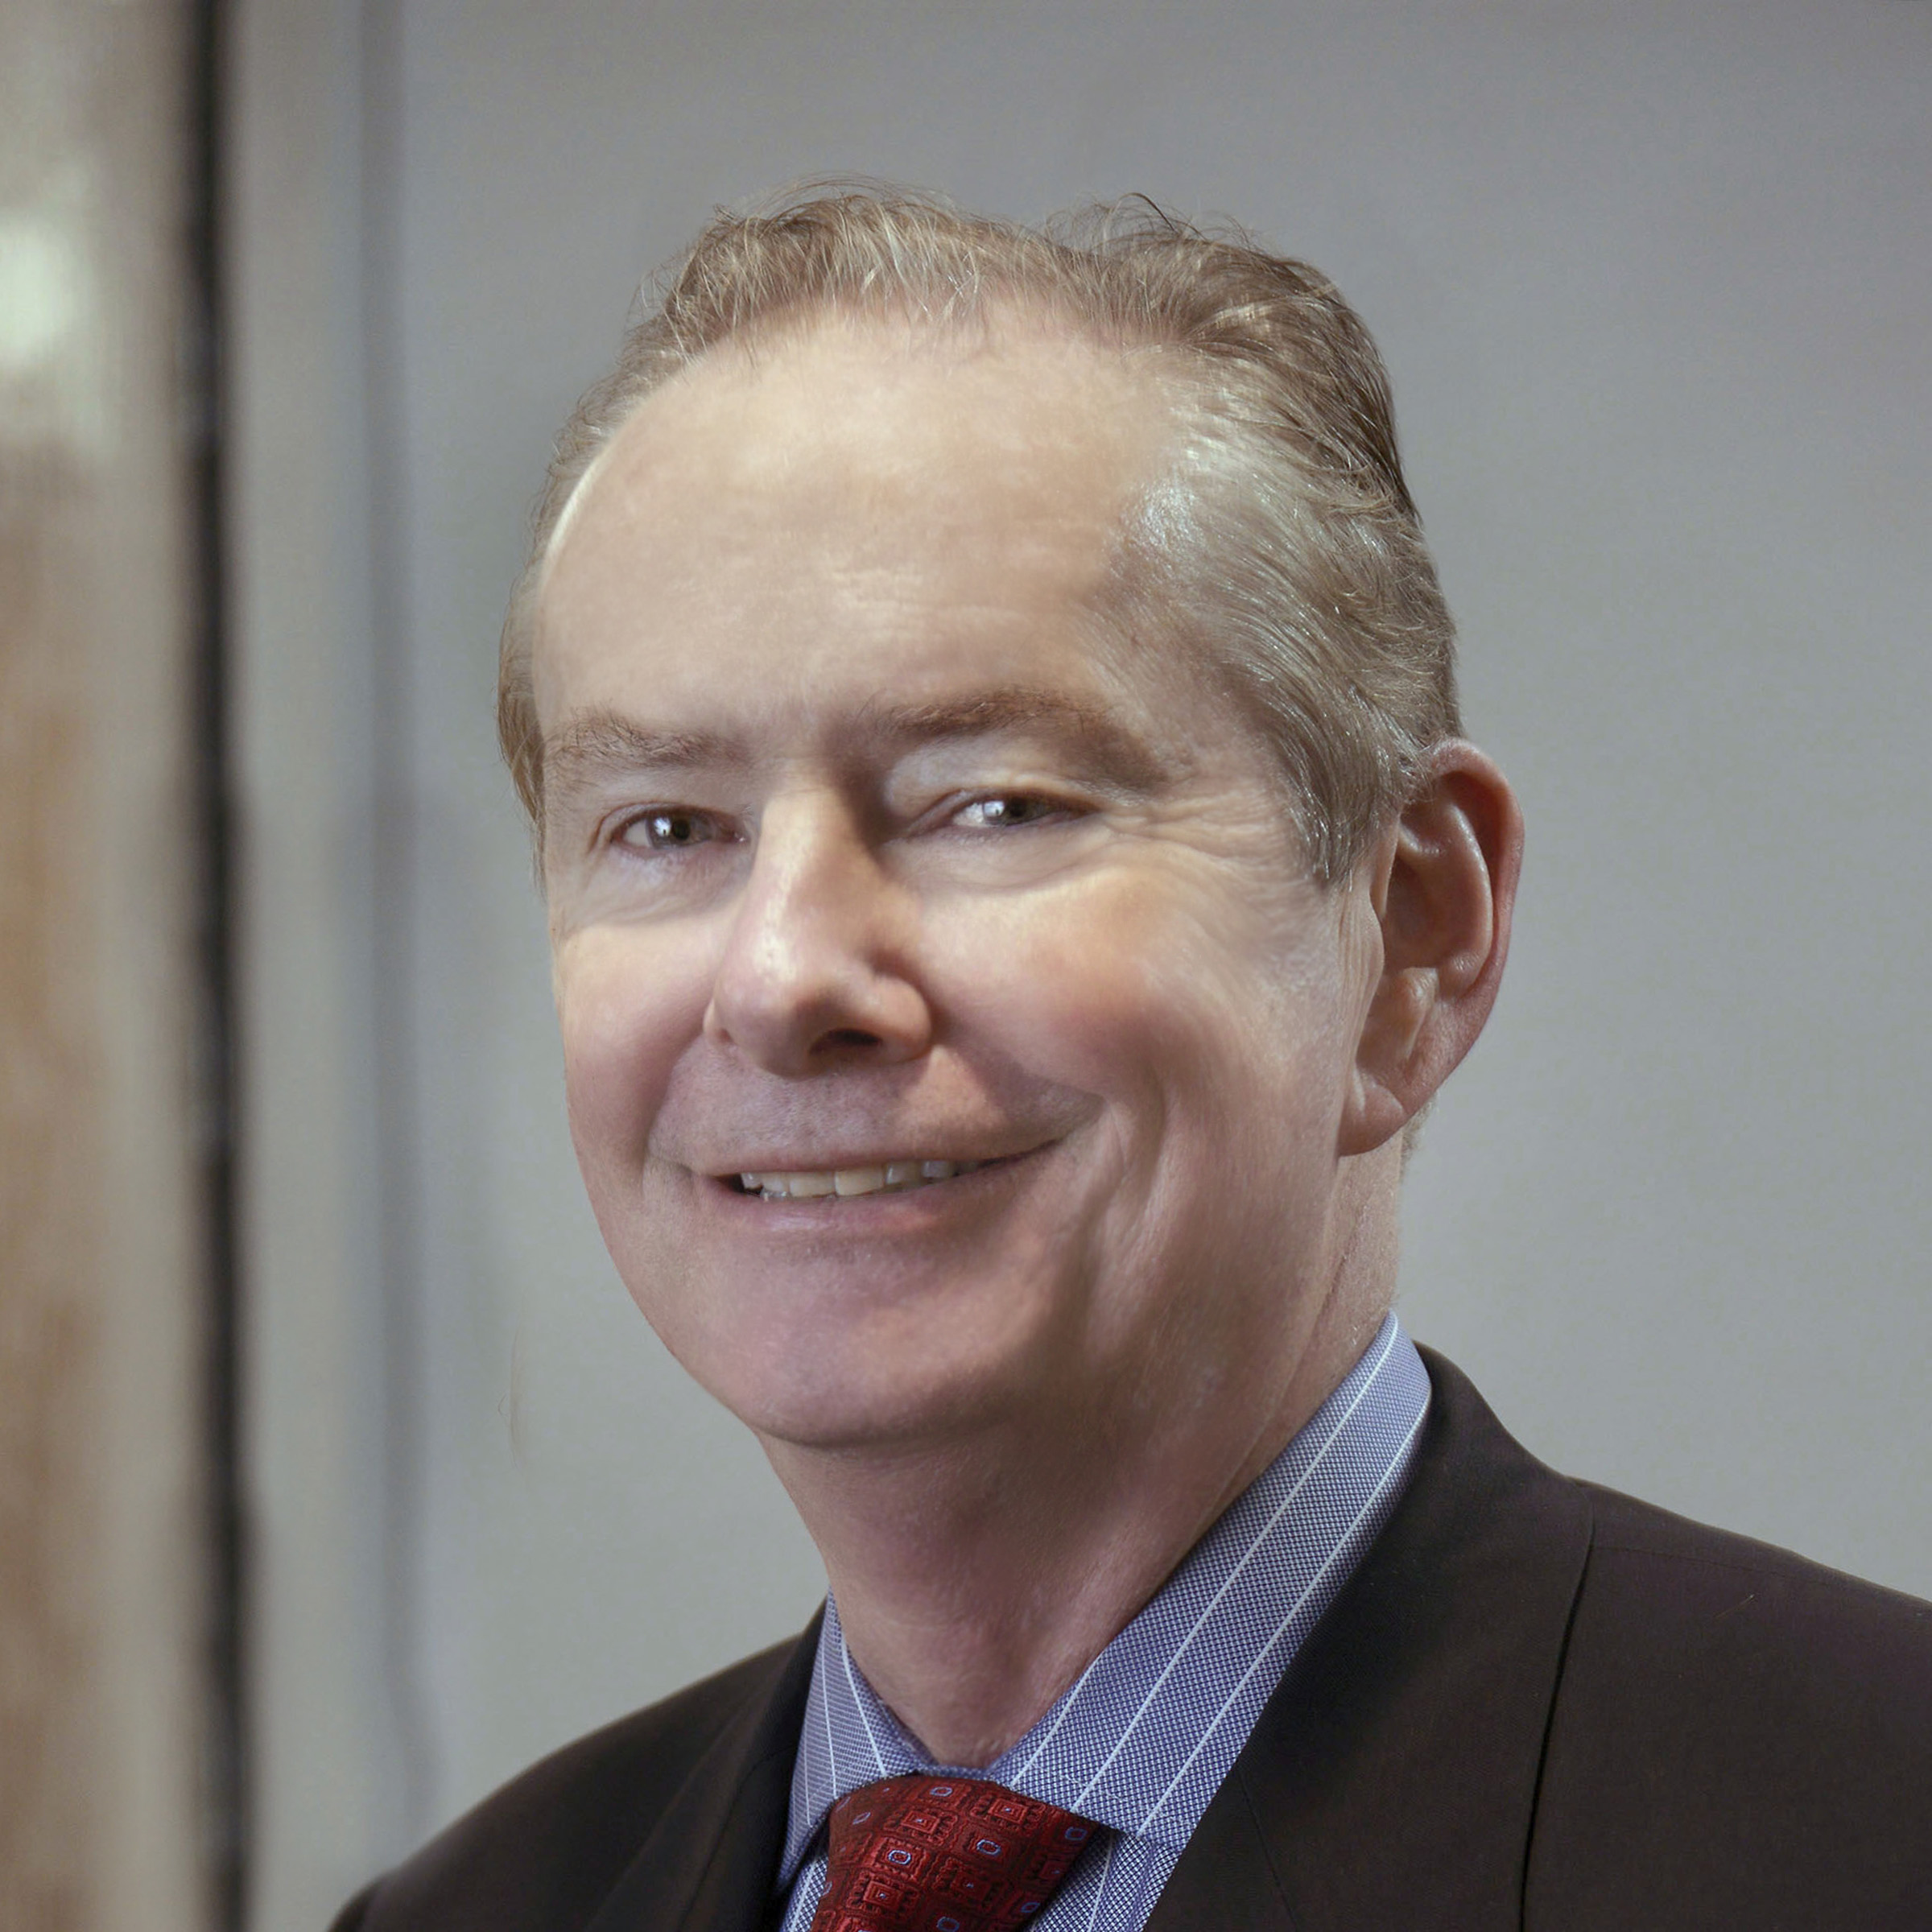 Robert Largey, MBA